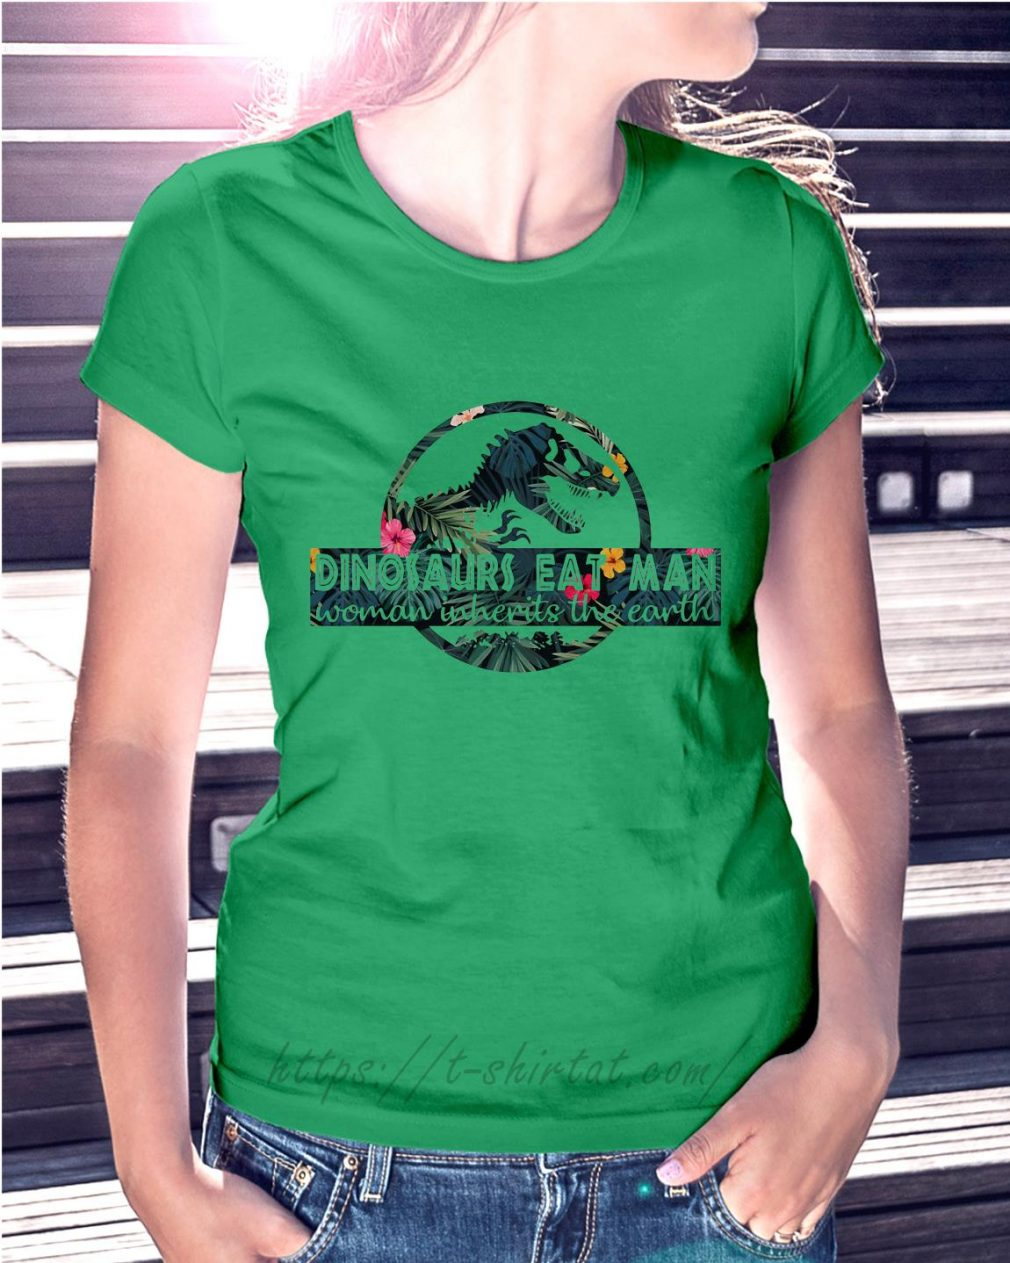 Dinosaurs eat man woman inherits the earth Ladies Tee green